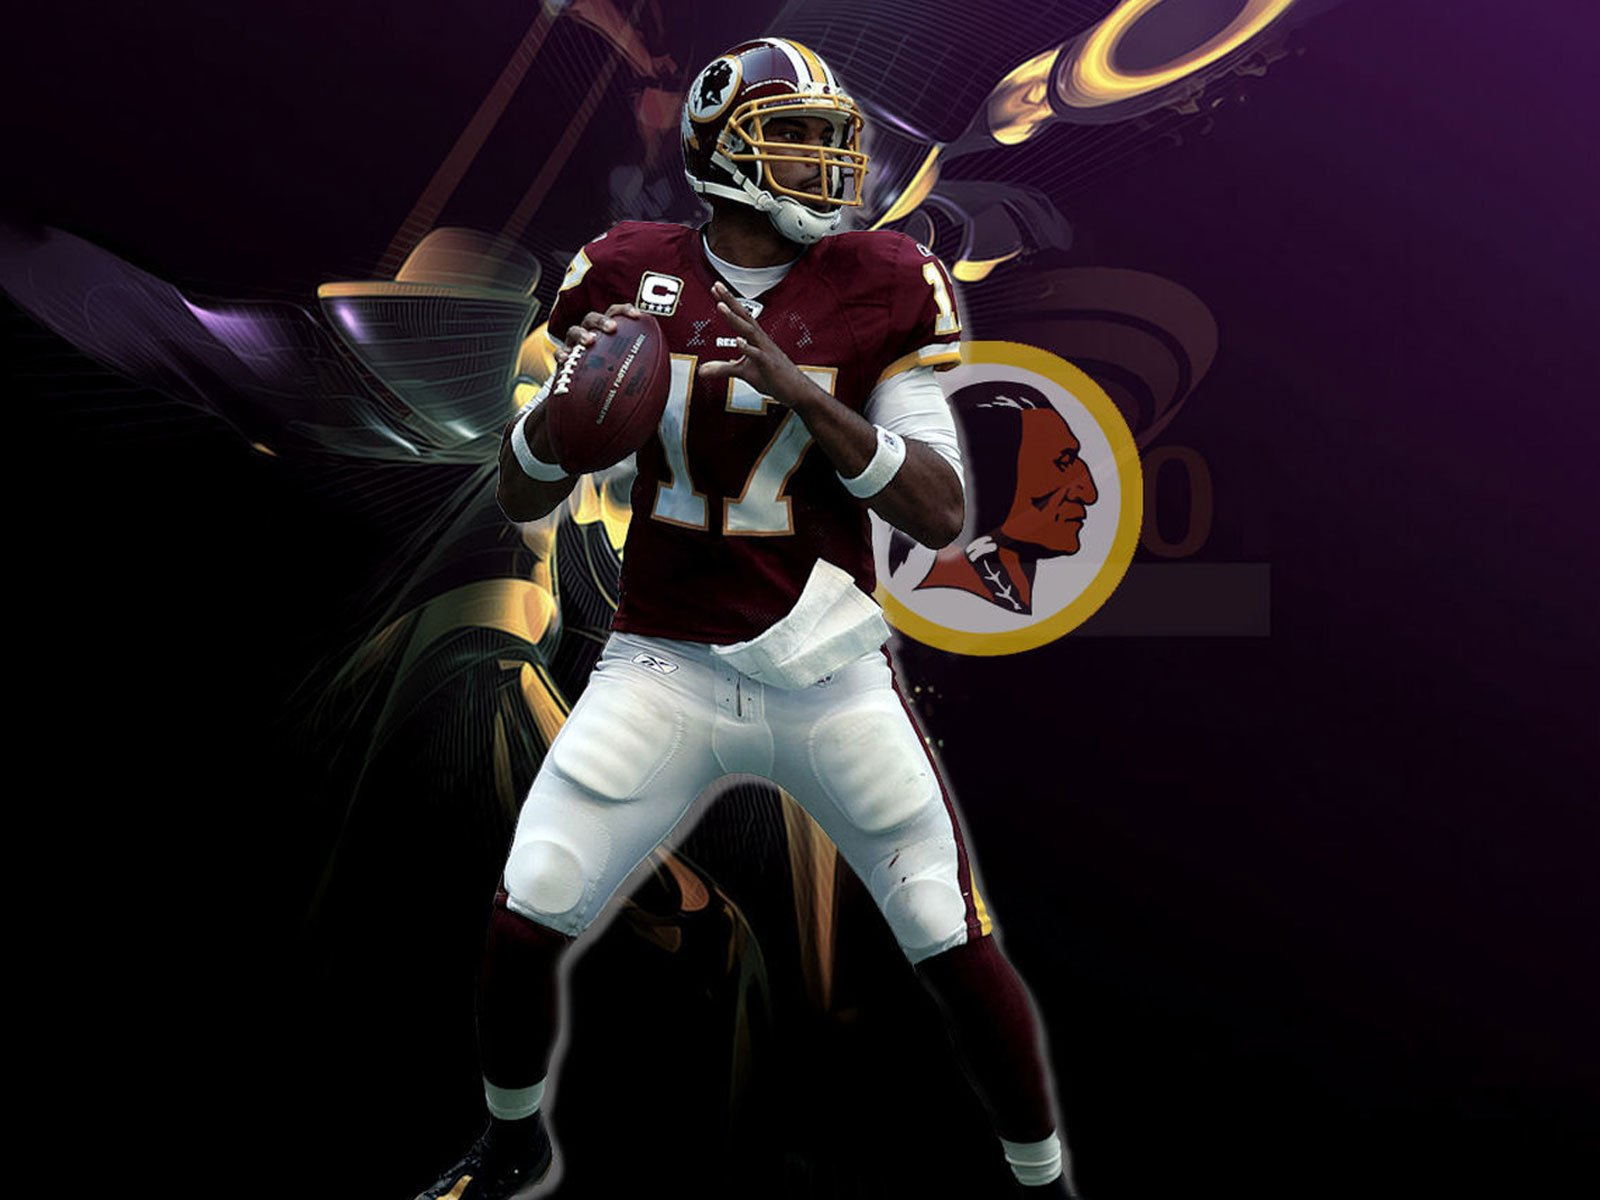 Nfl Football Players Cool 1080x1080: [42+] American Football Player Wallpaper On WallpaperSafari